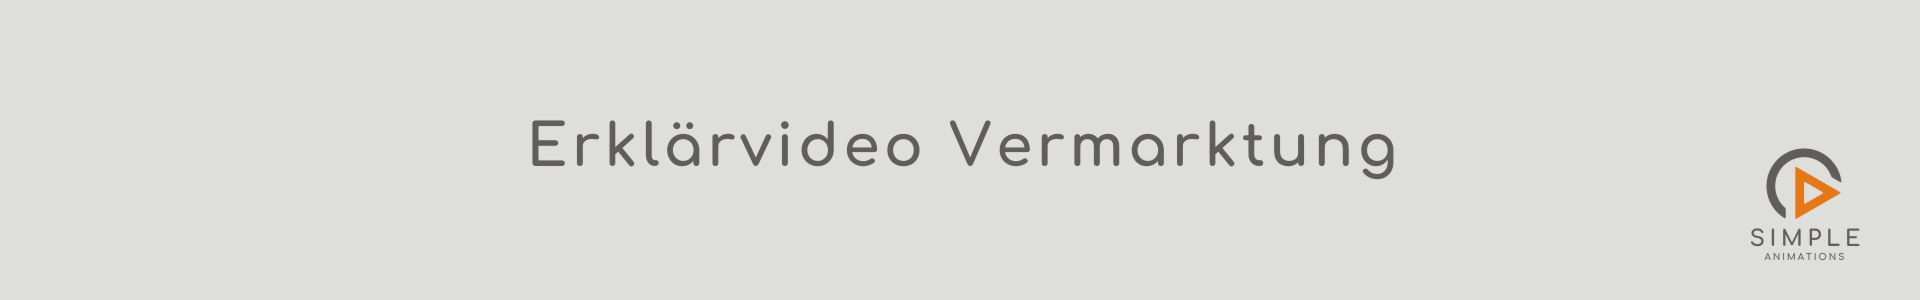 Erklaervideo-Vermarktung_Simple-Animations